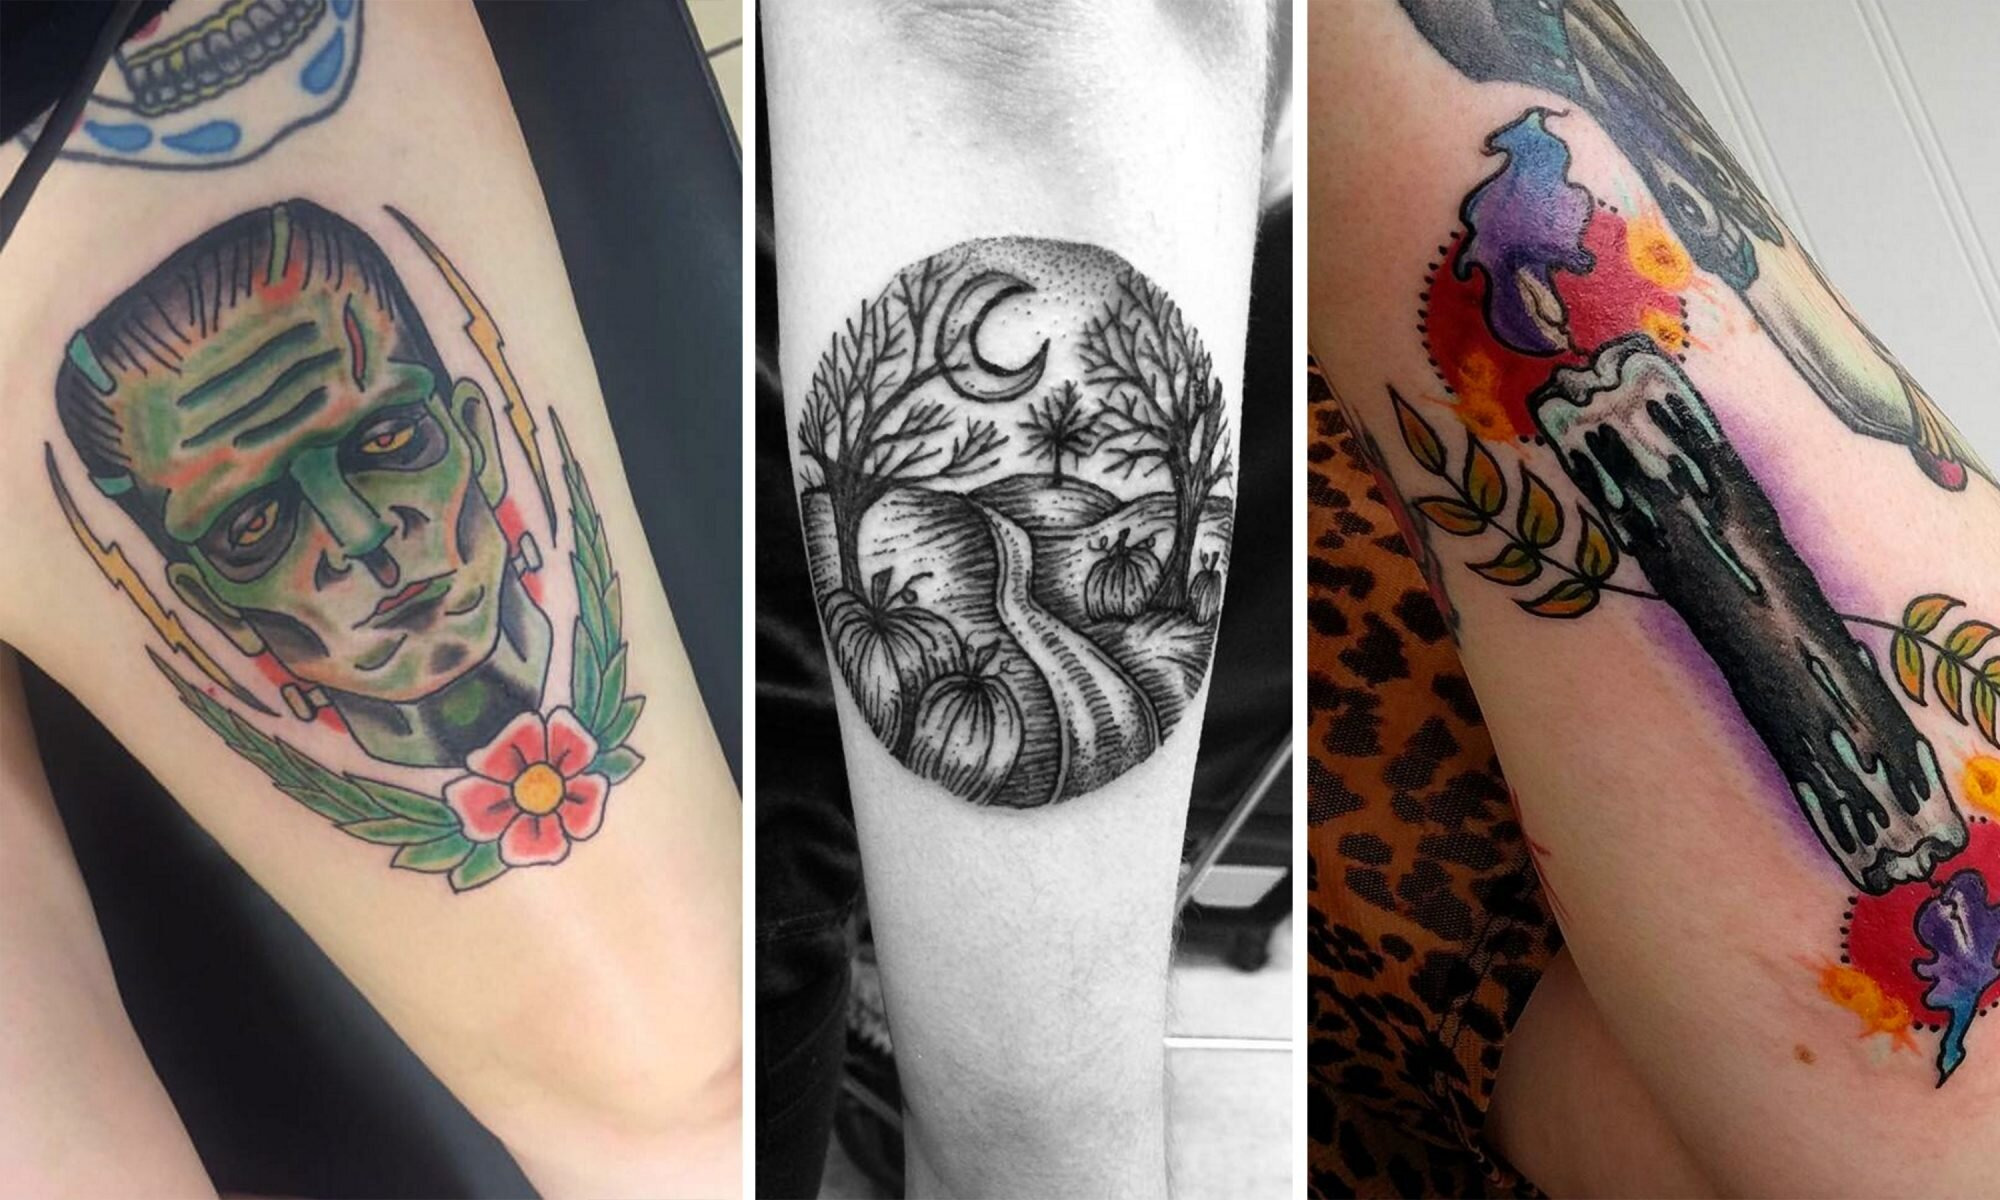 Halloween Tattoos.These 13 People Love Halloween So Much They Got It Tattooed On Their Bodies Hellogiggles